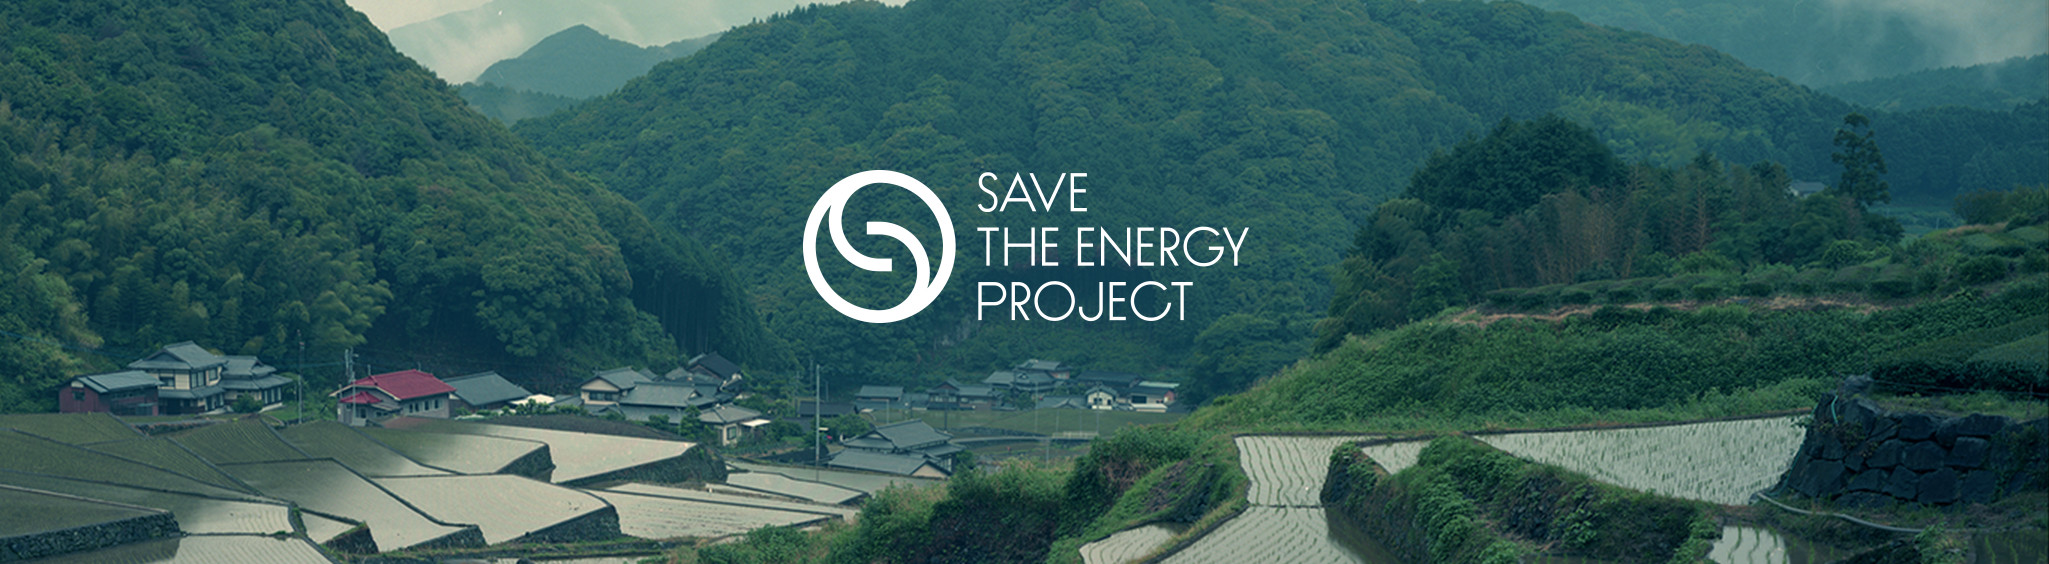 SAVE THE ENERGY PROJECT